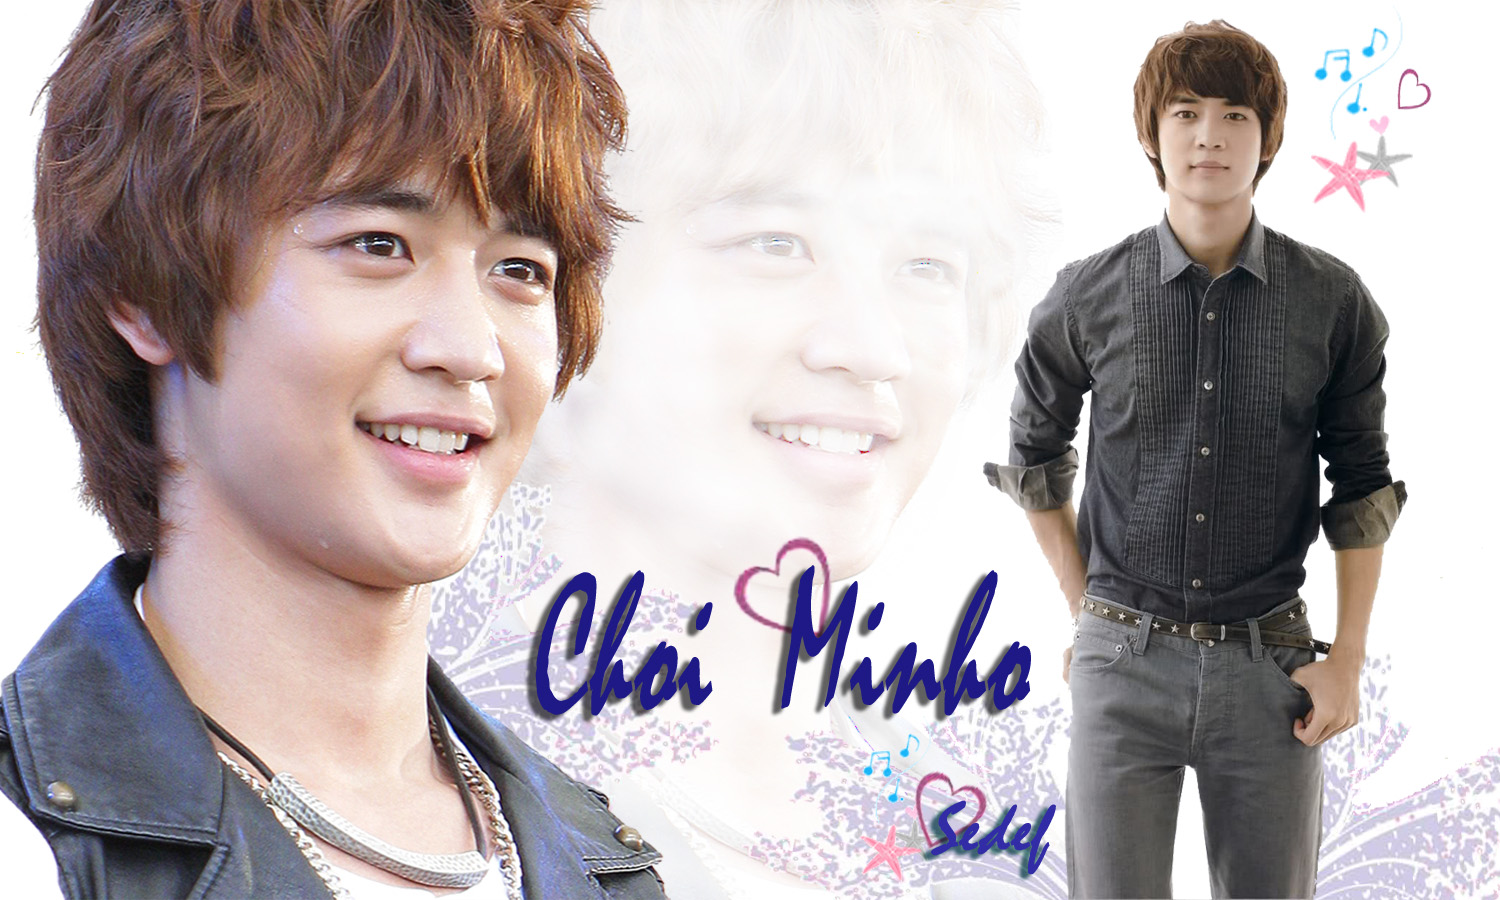 Choi Minho Wallpaper 2013 wwwimgkidcom   The Image Kid 1500x900